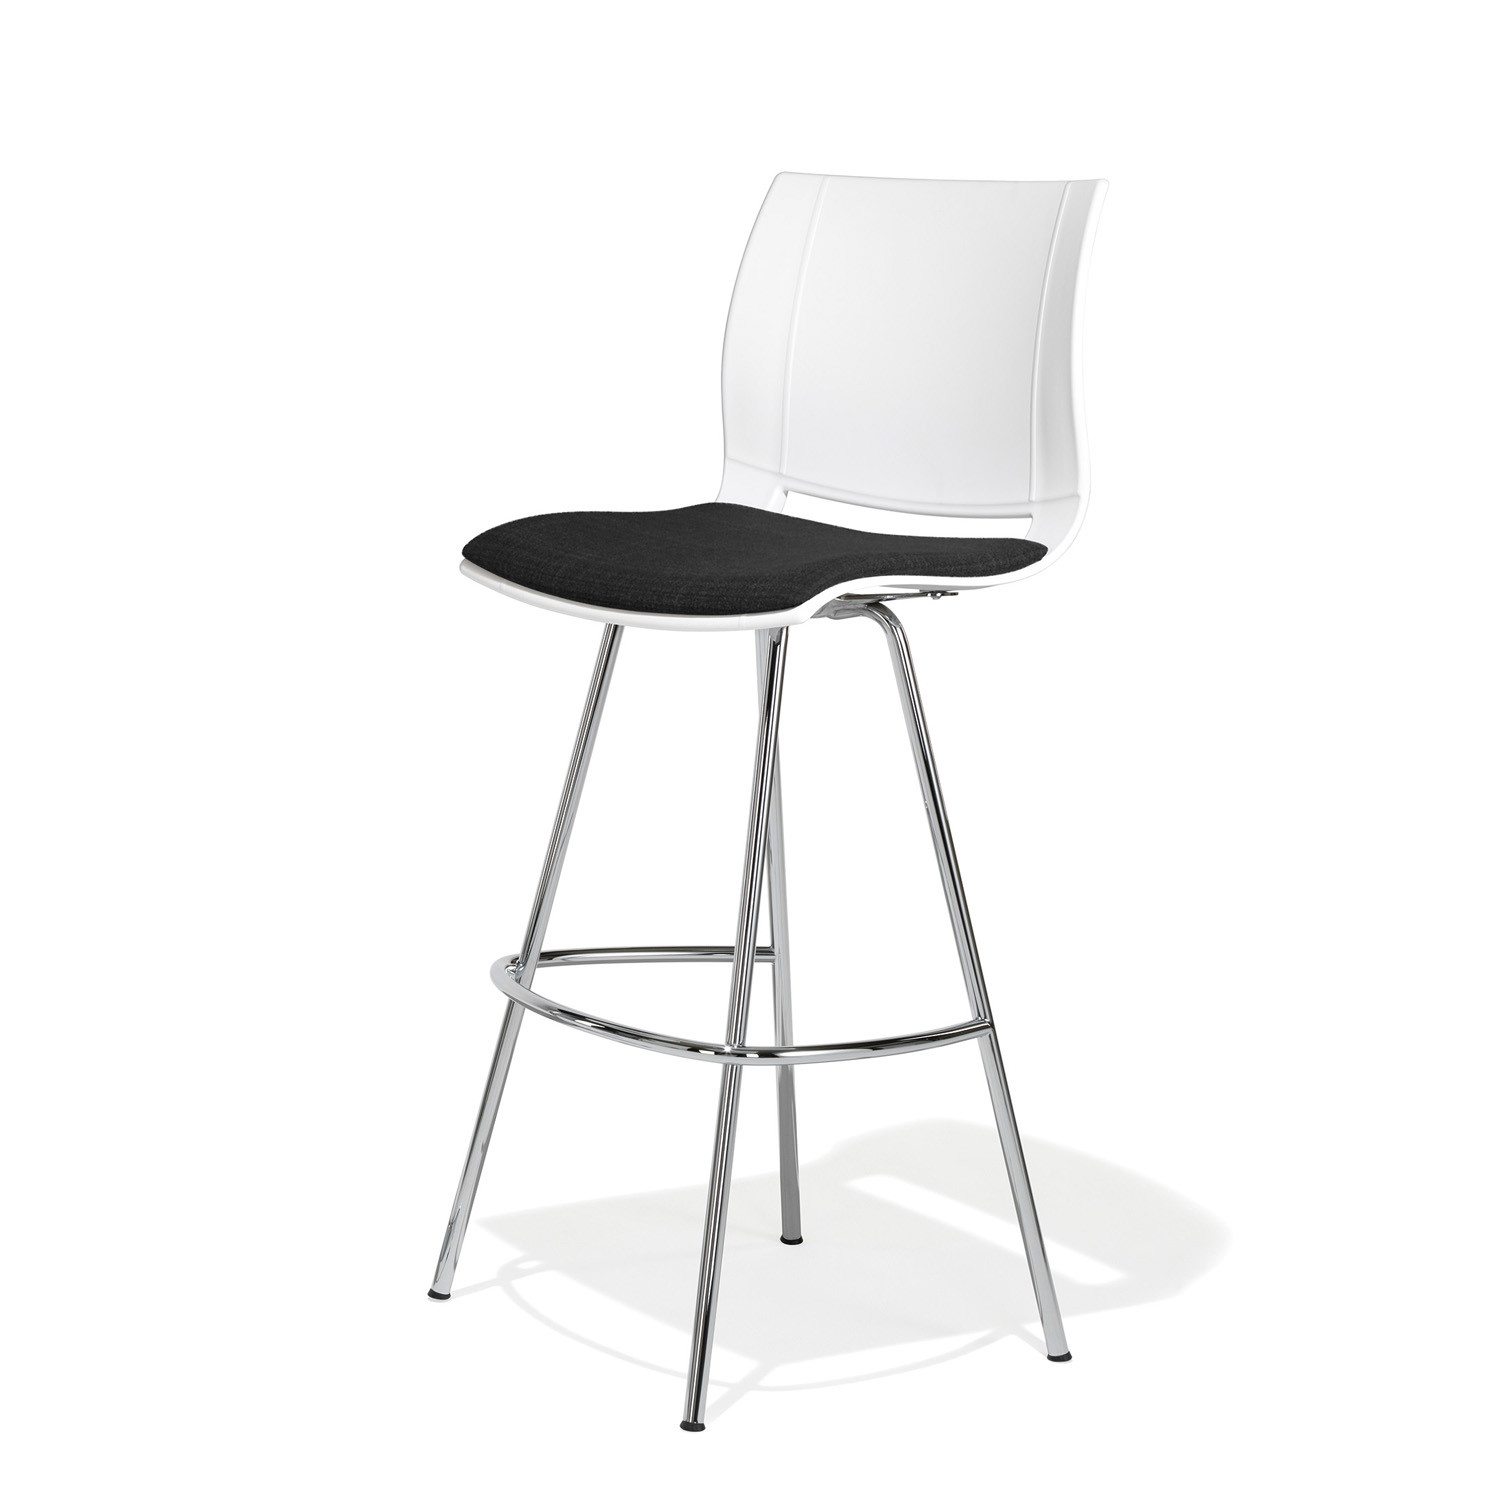 2000 Uni_Verso Barstool with padded seat